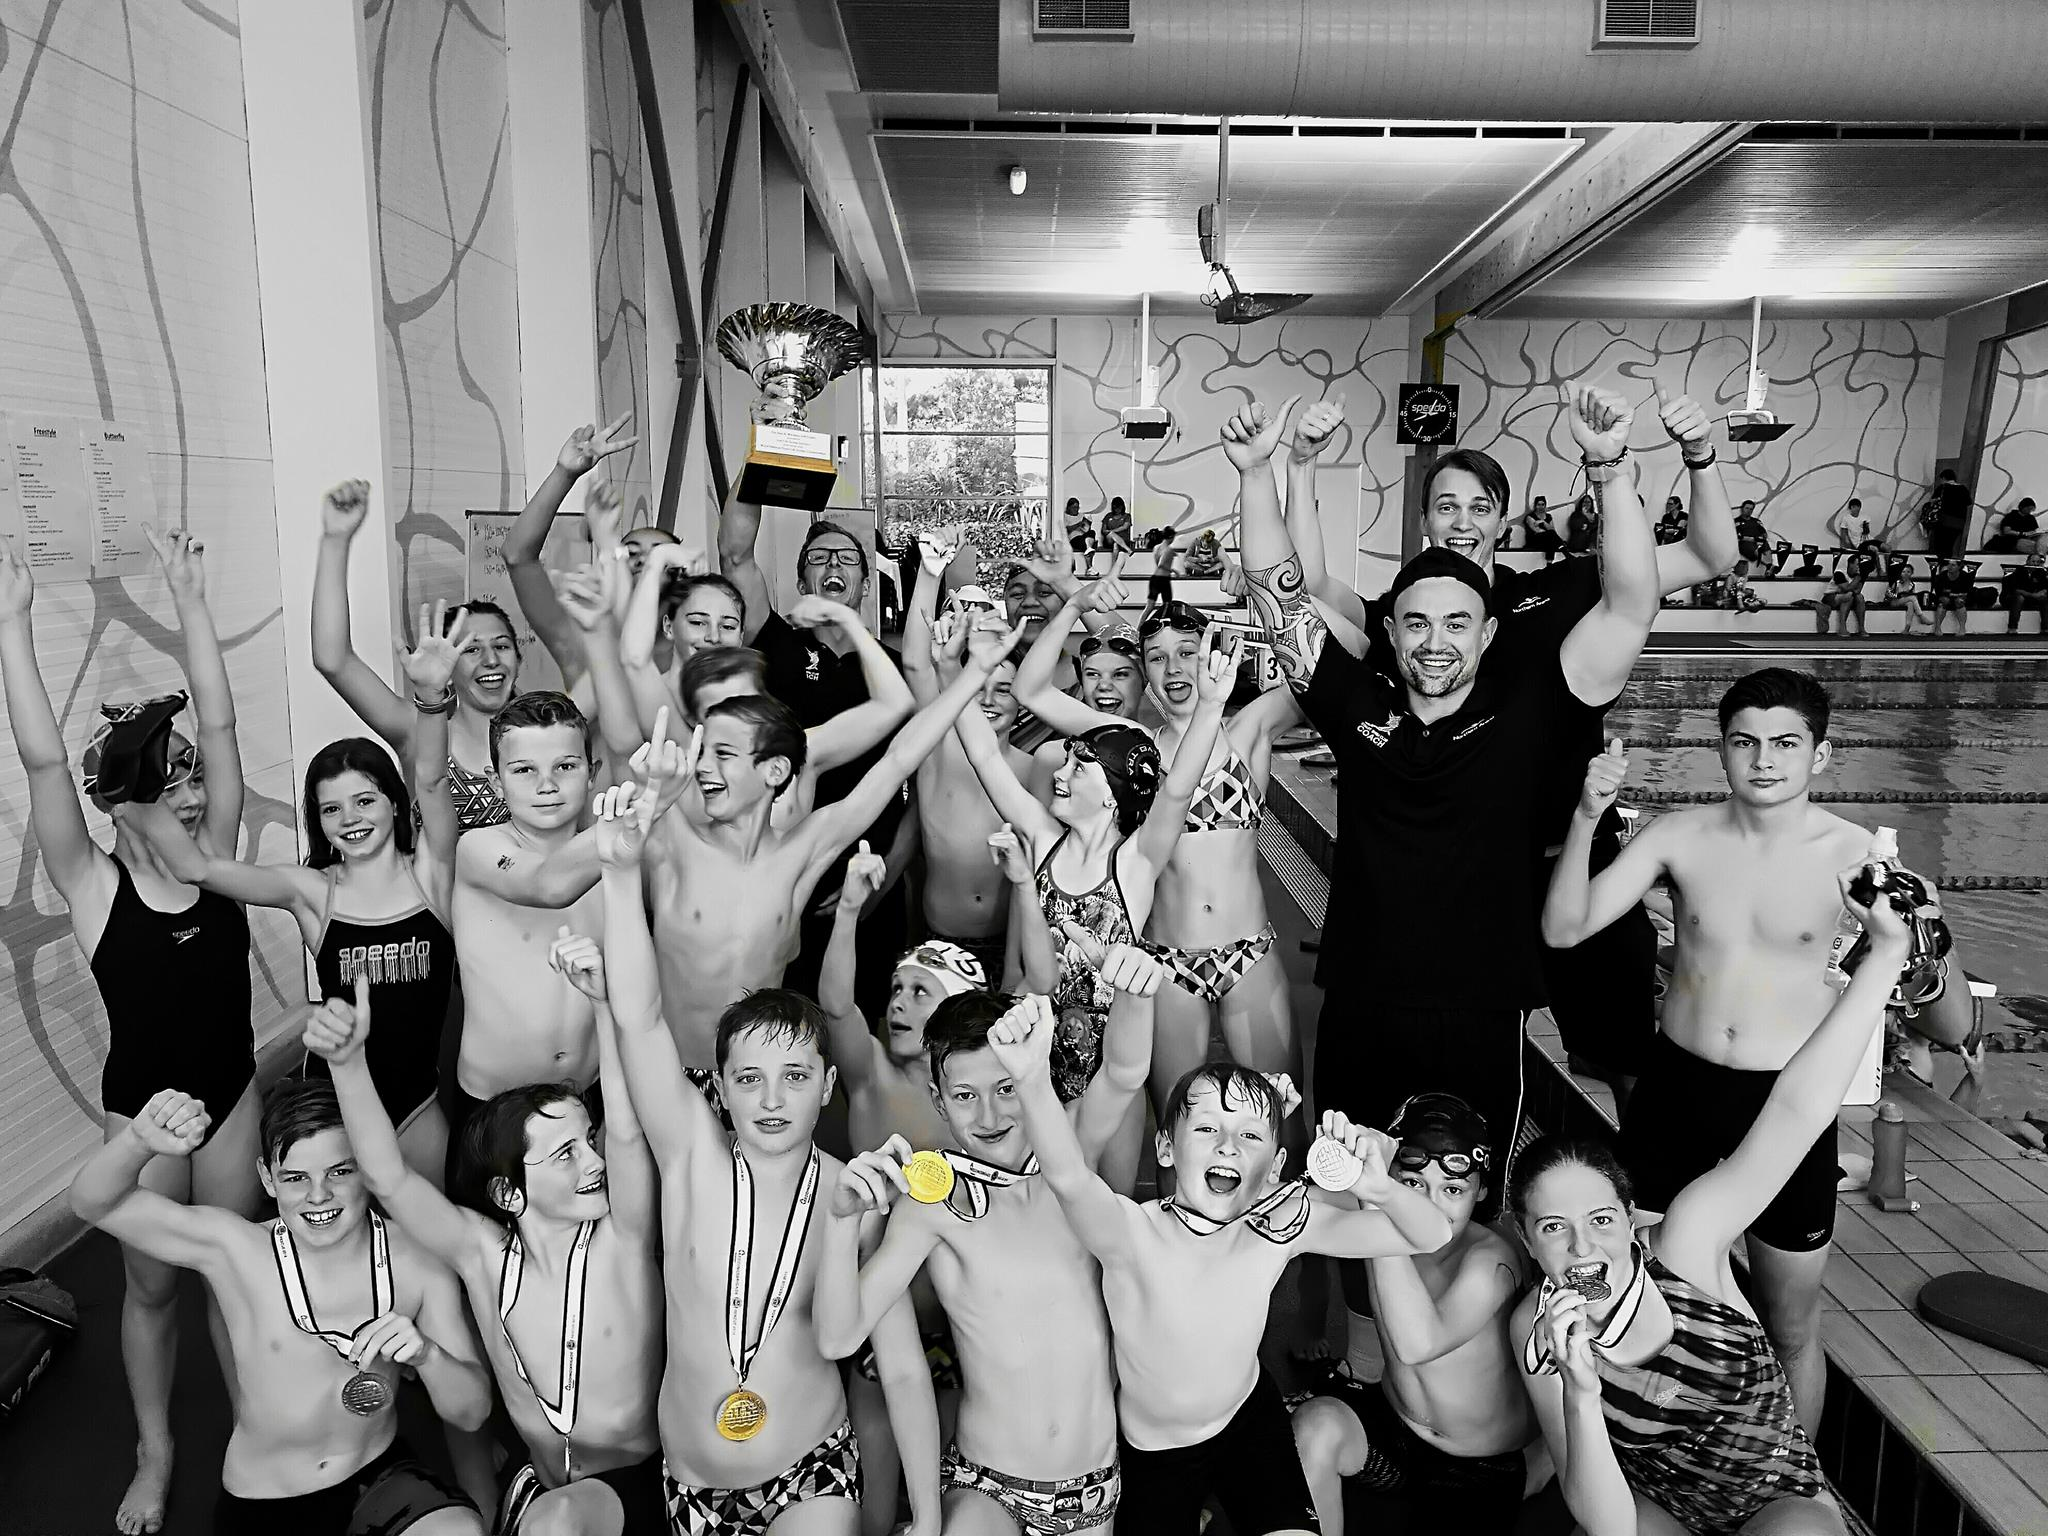 Make a Donation... - We have three levels of donation through NZ Swim Alumni,each with their own benefits and all helping towards helping out our amazing and deserving athletes.GOLD: $1000 and overSILVER: $500 to $999BRONZE: $100 to $499Payment may be made by cheque or direct creditBank account: Westpac Matamata 03 0363 0296373 00(Please include your full name as reference)